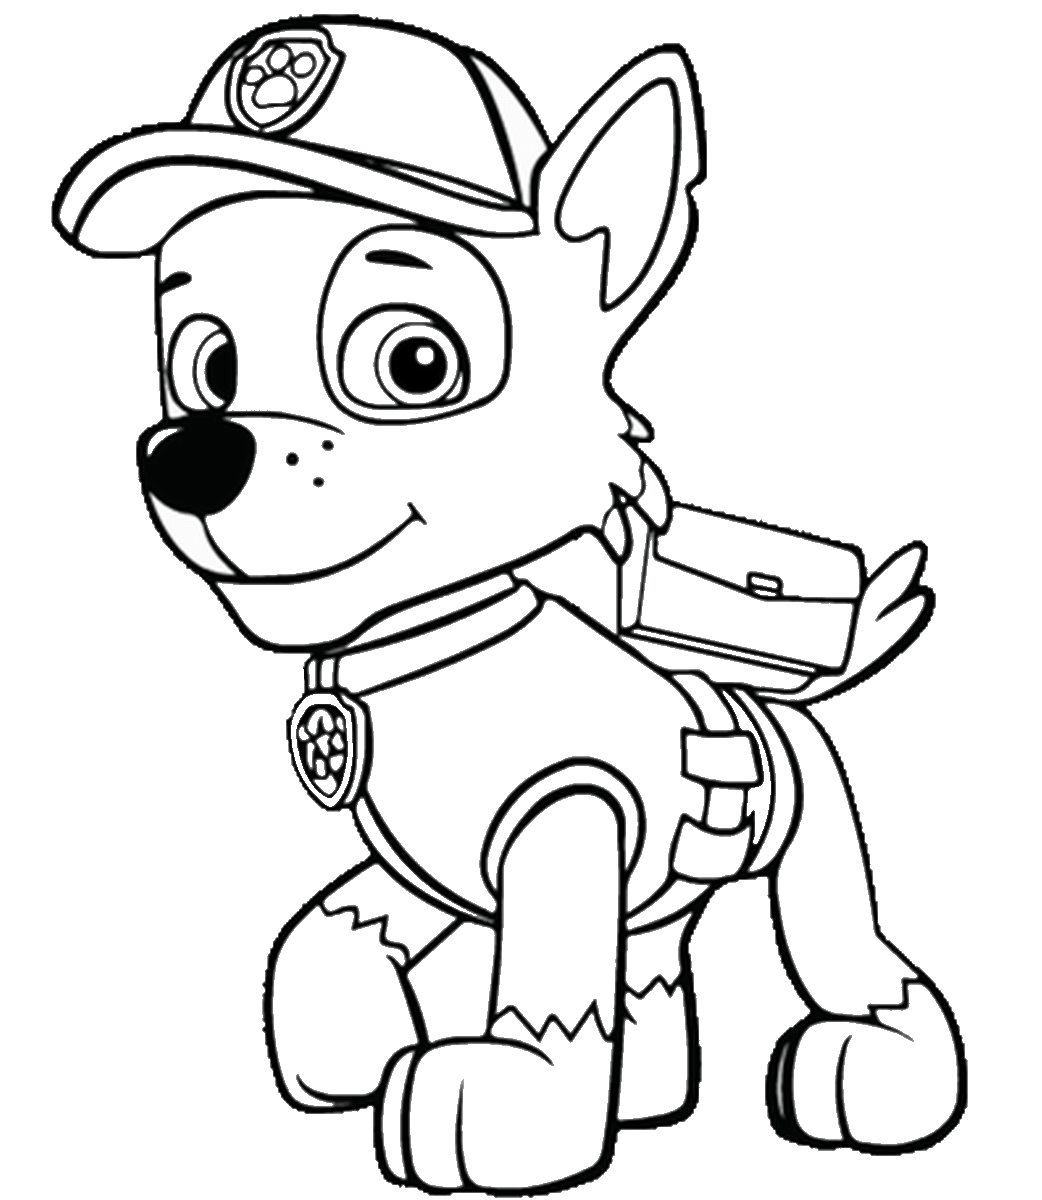 - Paw Patrol Coloring Pages - Best Coloring Pages For Kids